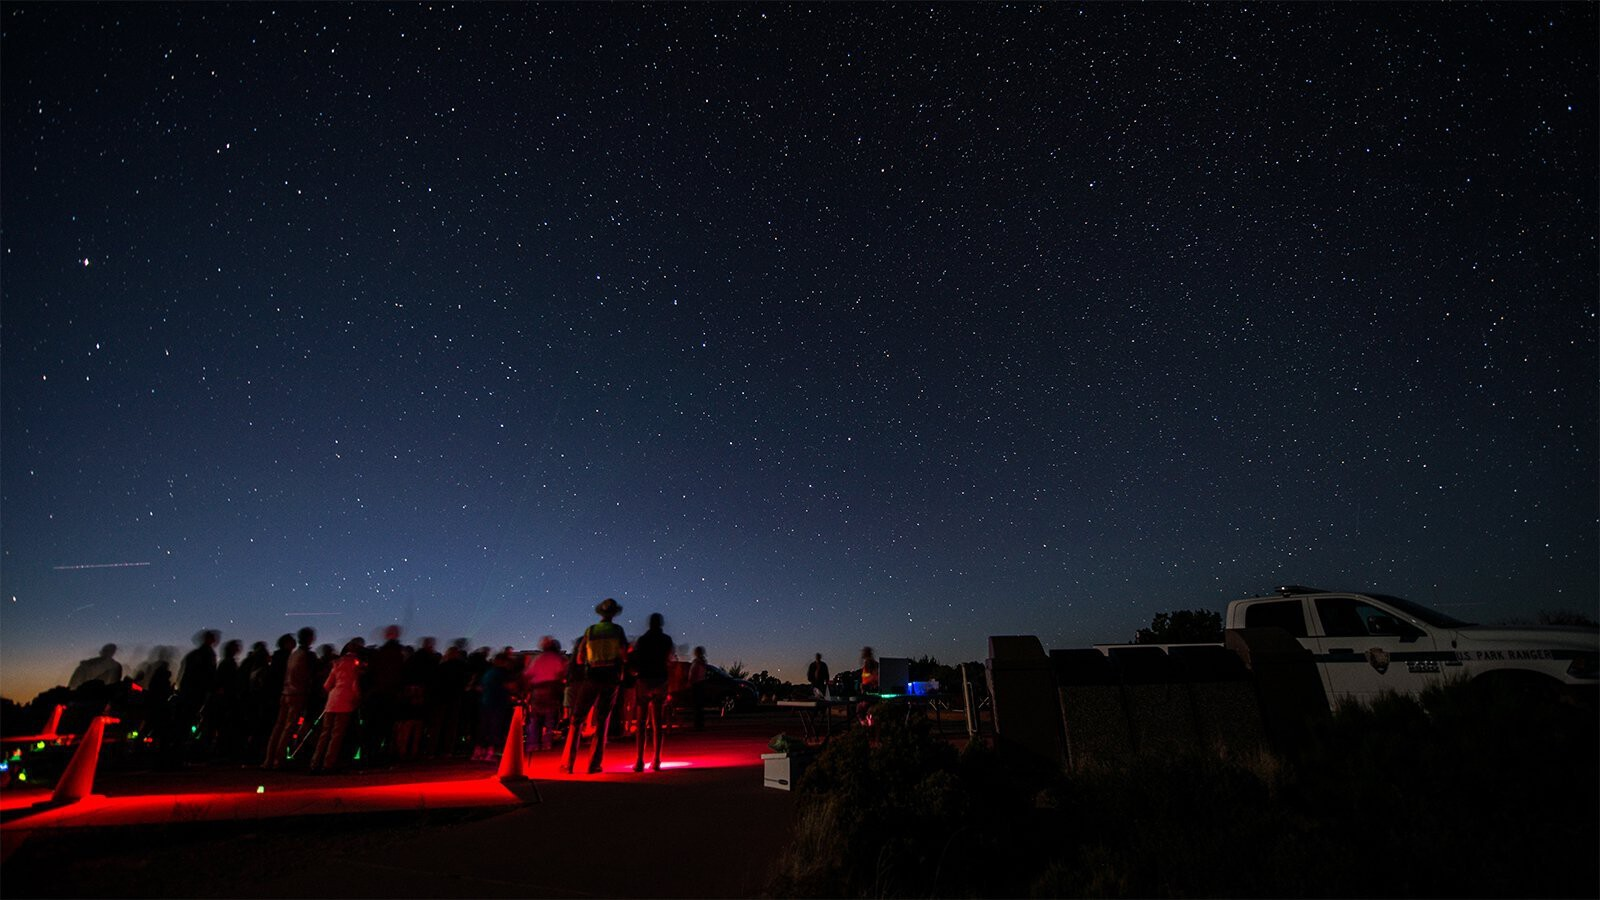 The Delta Aquariids meteor shower peaks near July's end. Here's how to watch